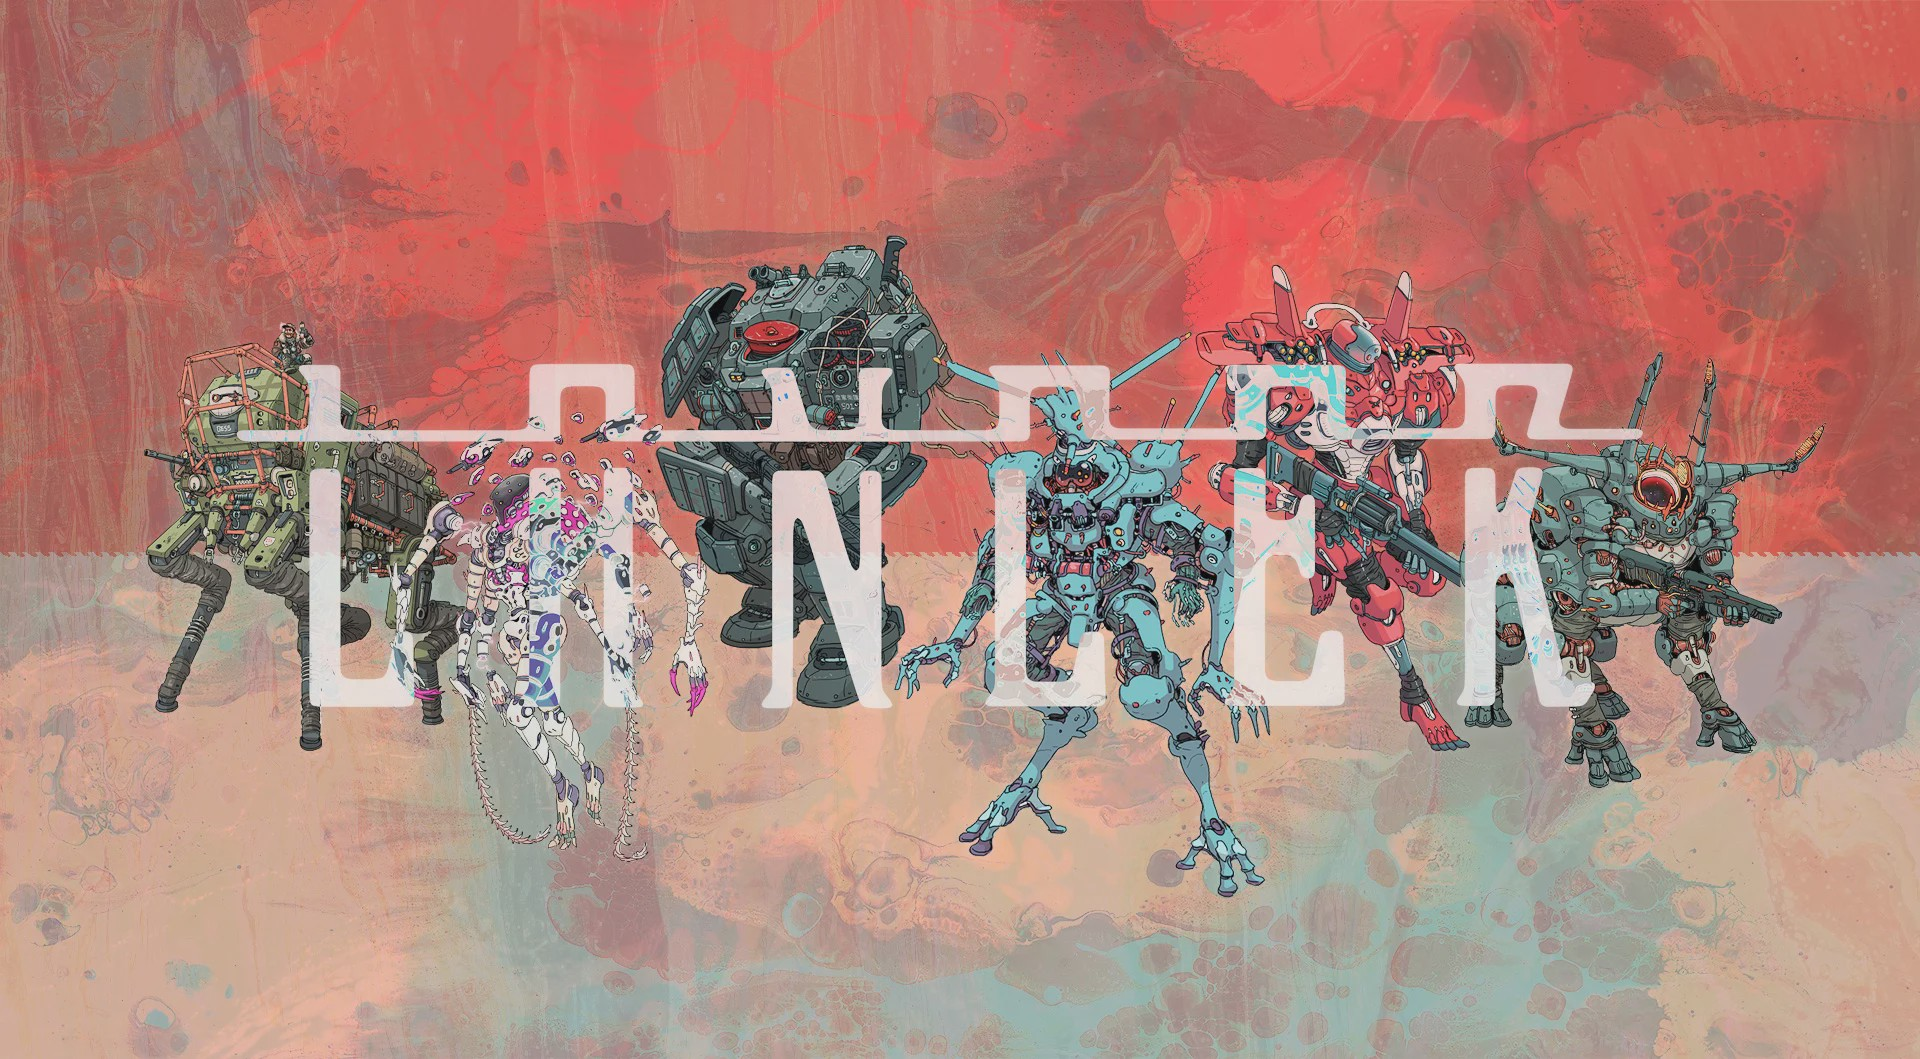 A promotional poster for Lancer. The Lancer logo is semi-transparent. Six mechs stands behind the logo.